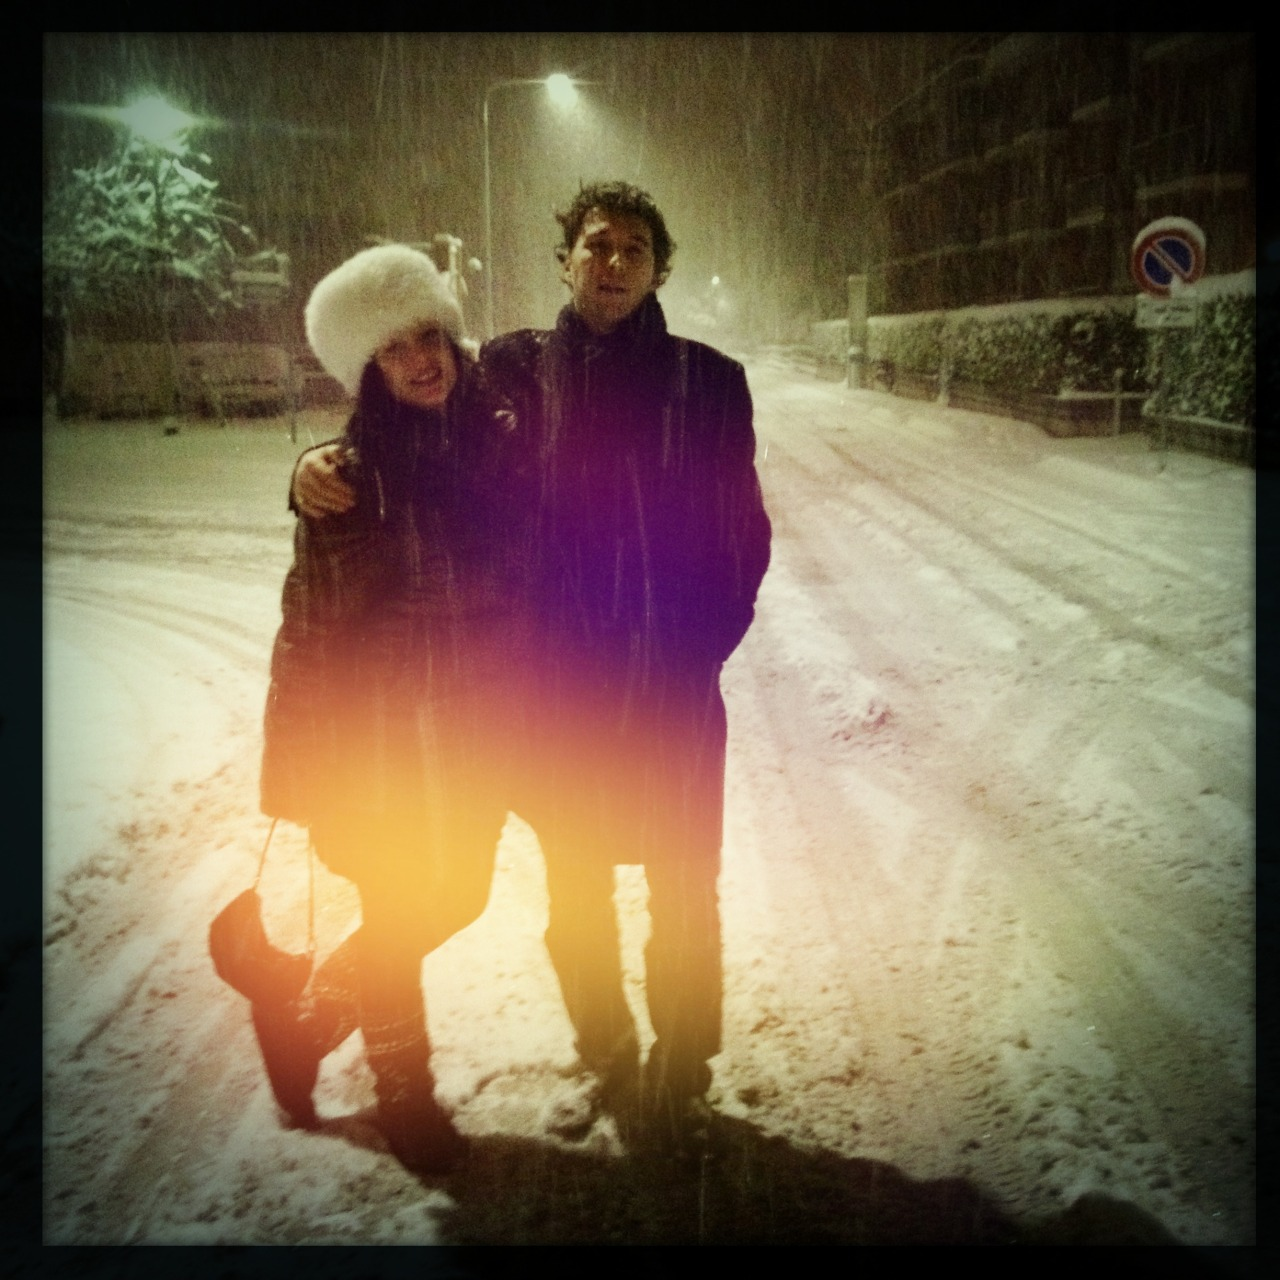 Werner & Giulia in the street while snow was falling